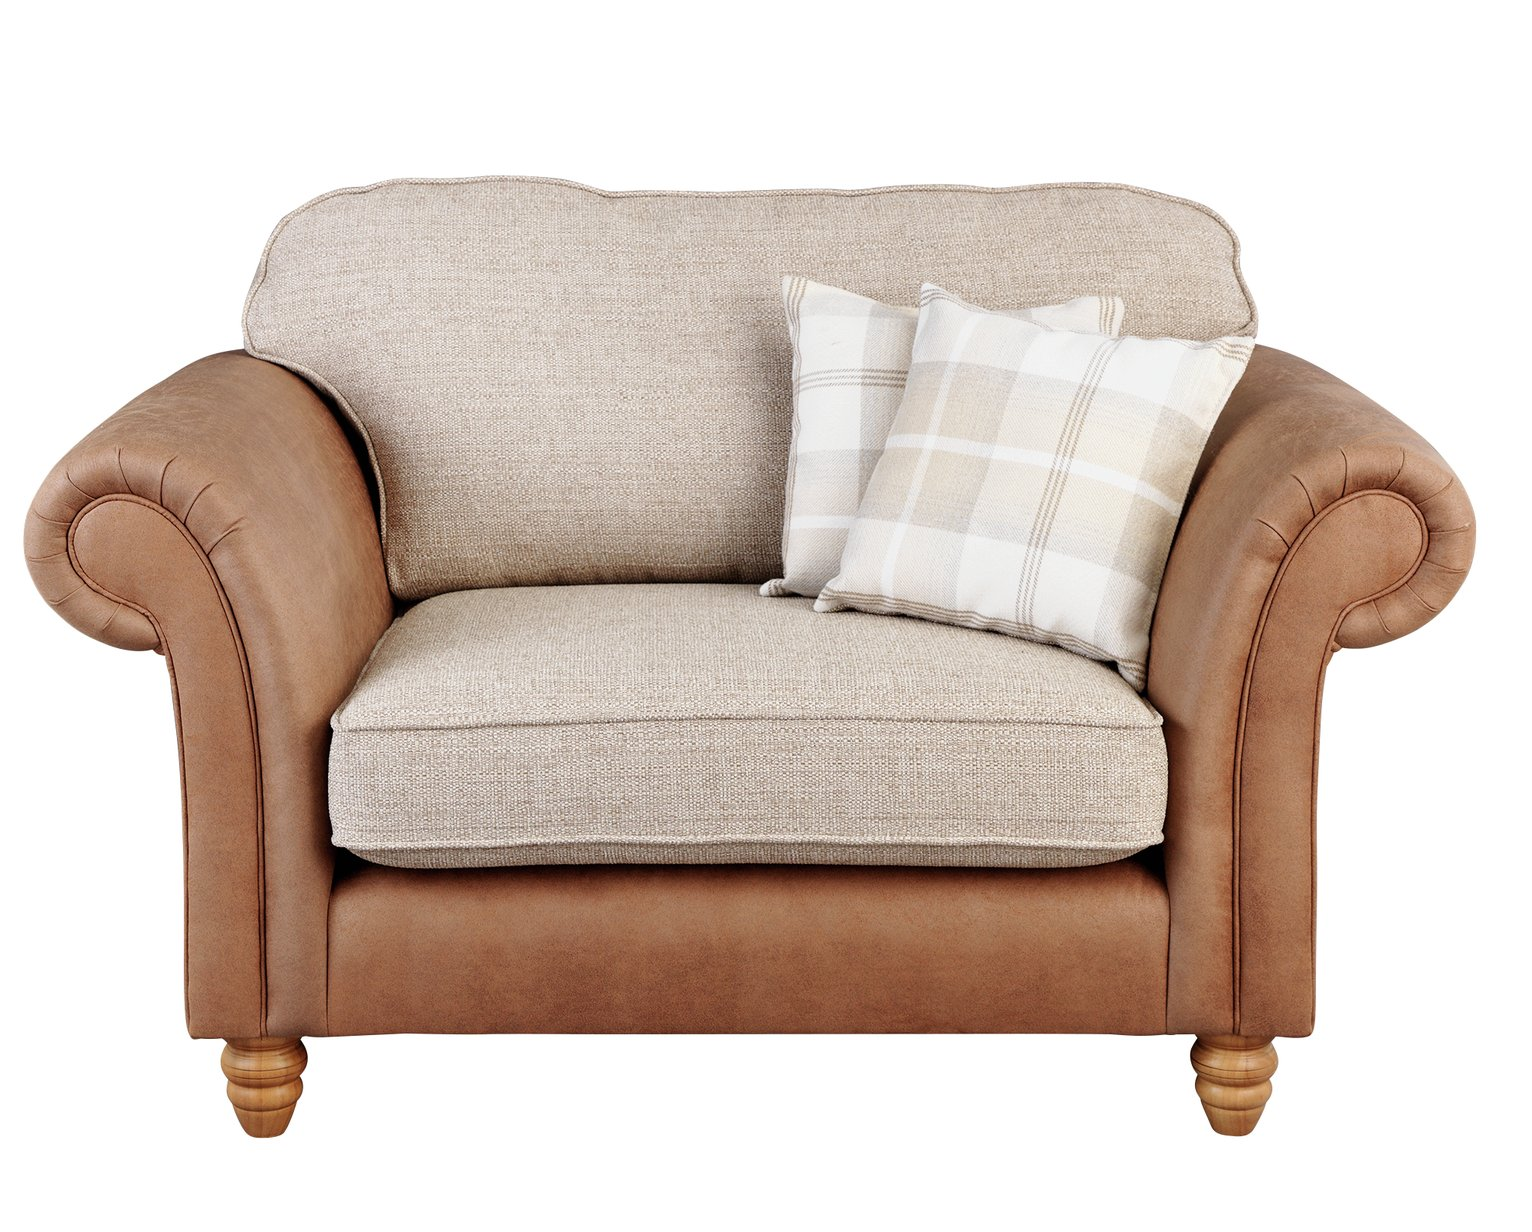 Argos Home Winter Windsor Fabric Cuddle Chair - Beige